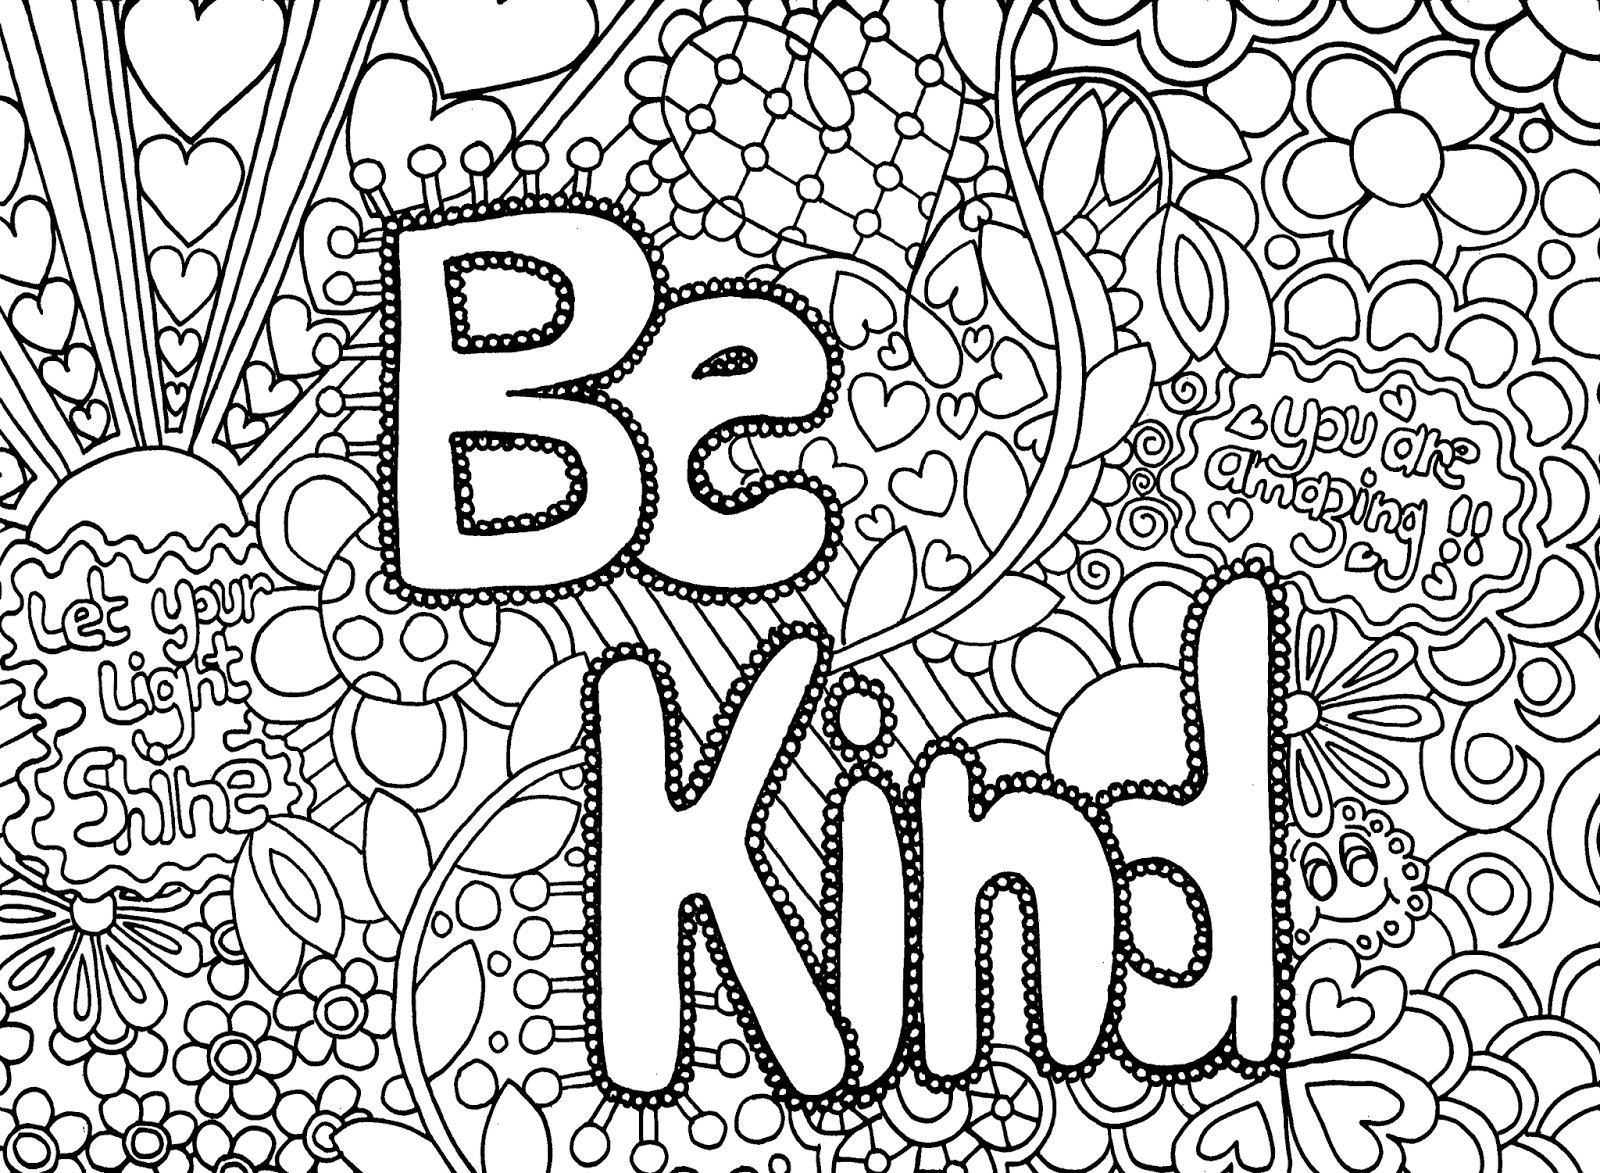 Difficult Christmas Coloring Pages For Kids  Difficult Hard Coloring Pages Printable